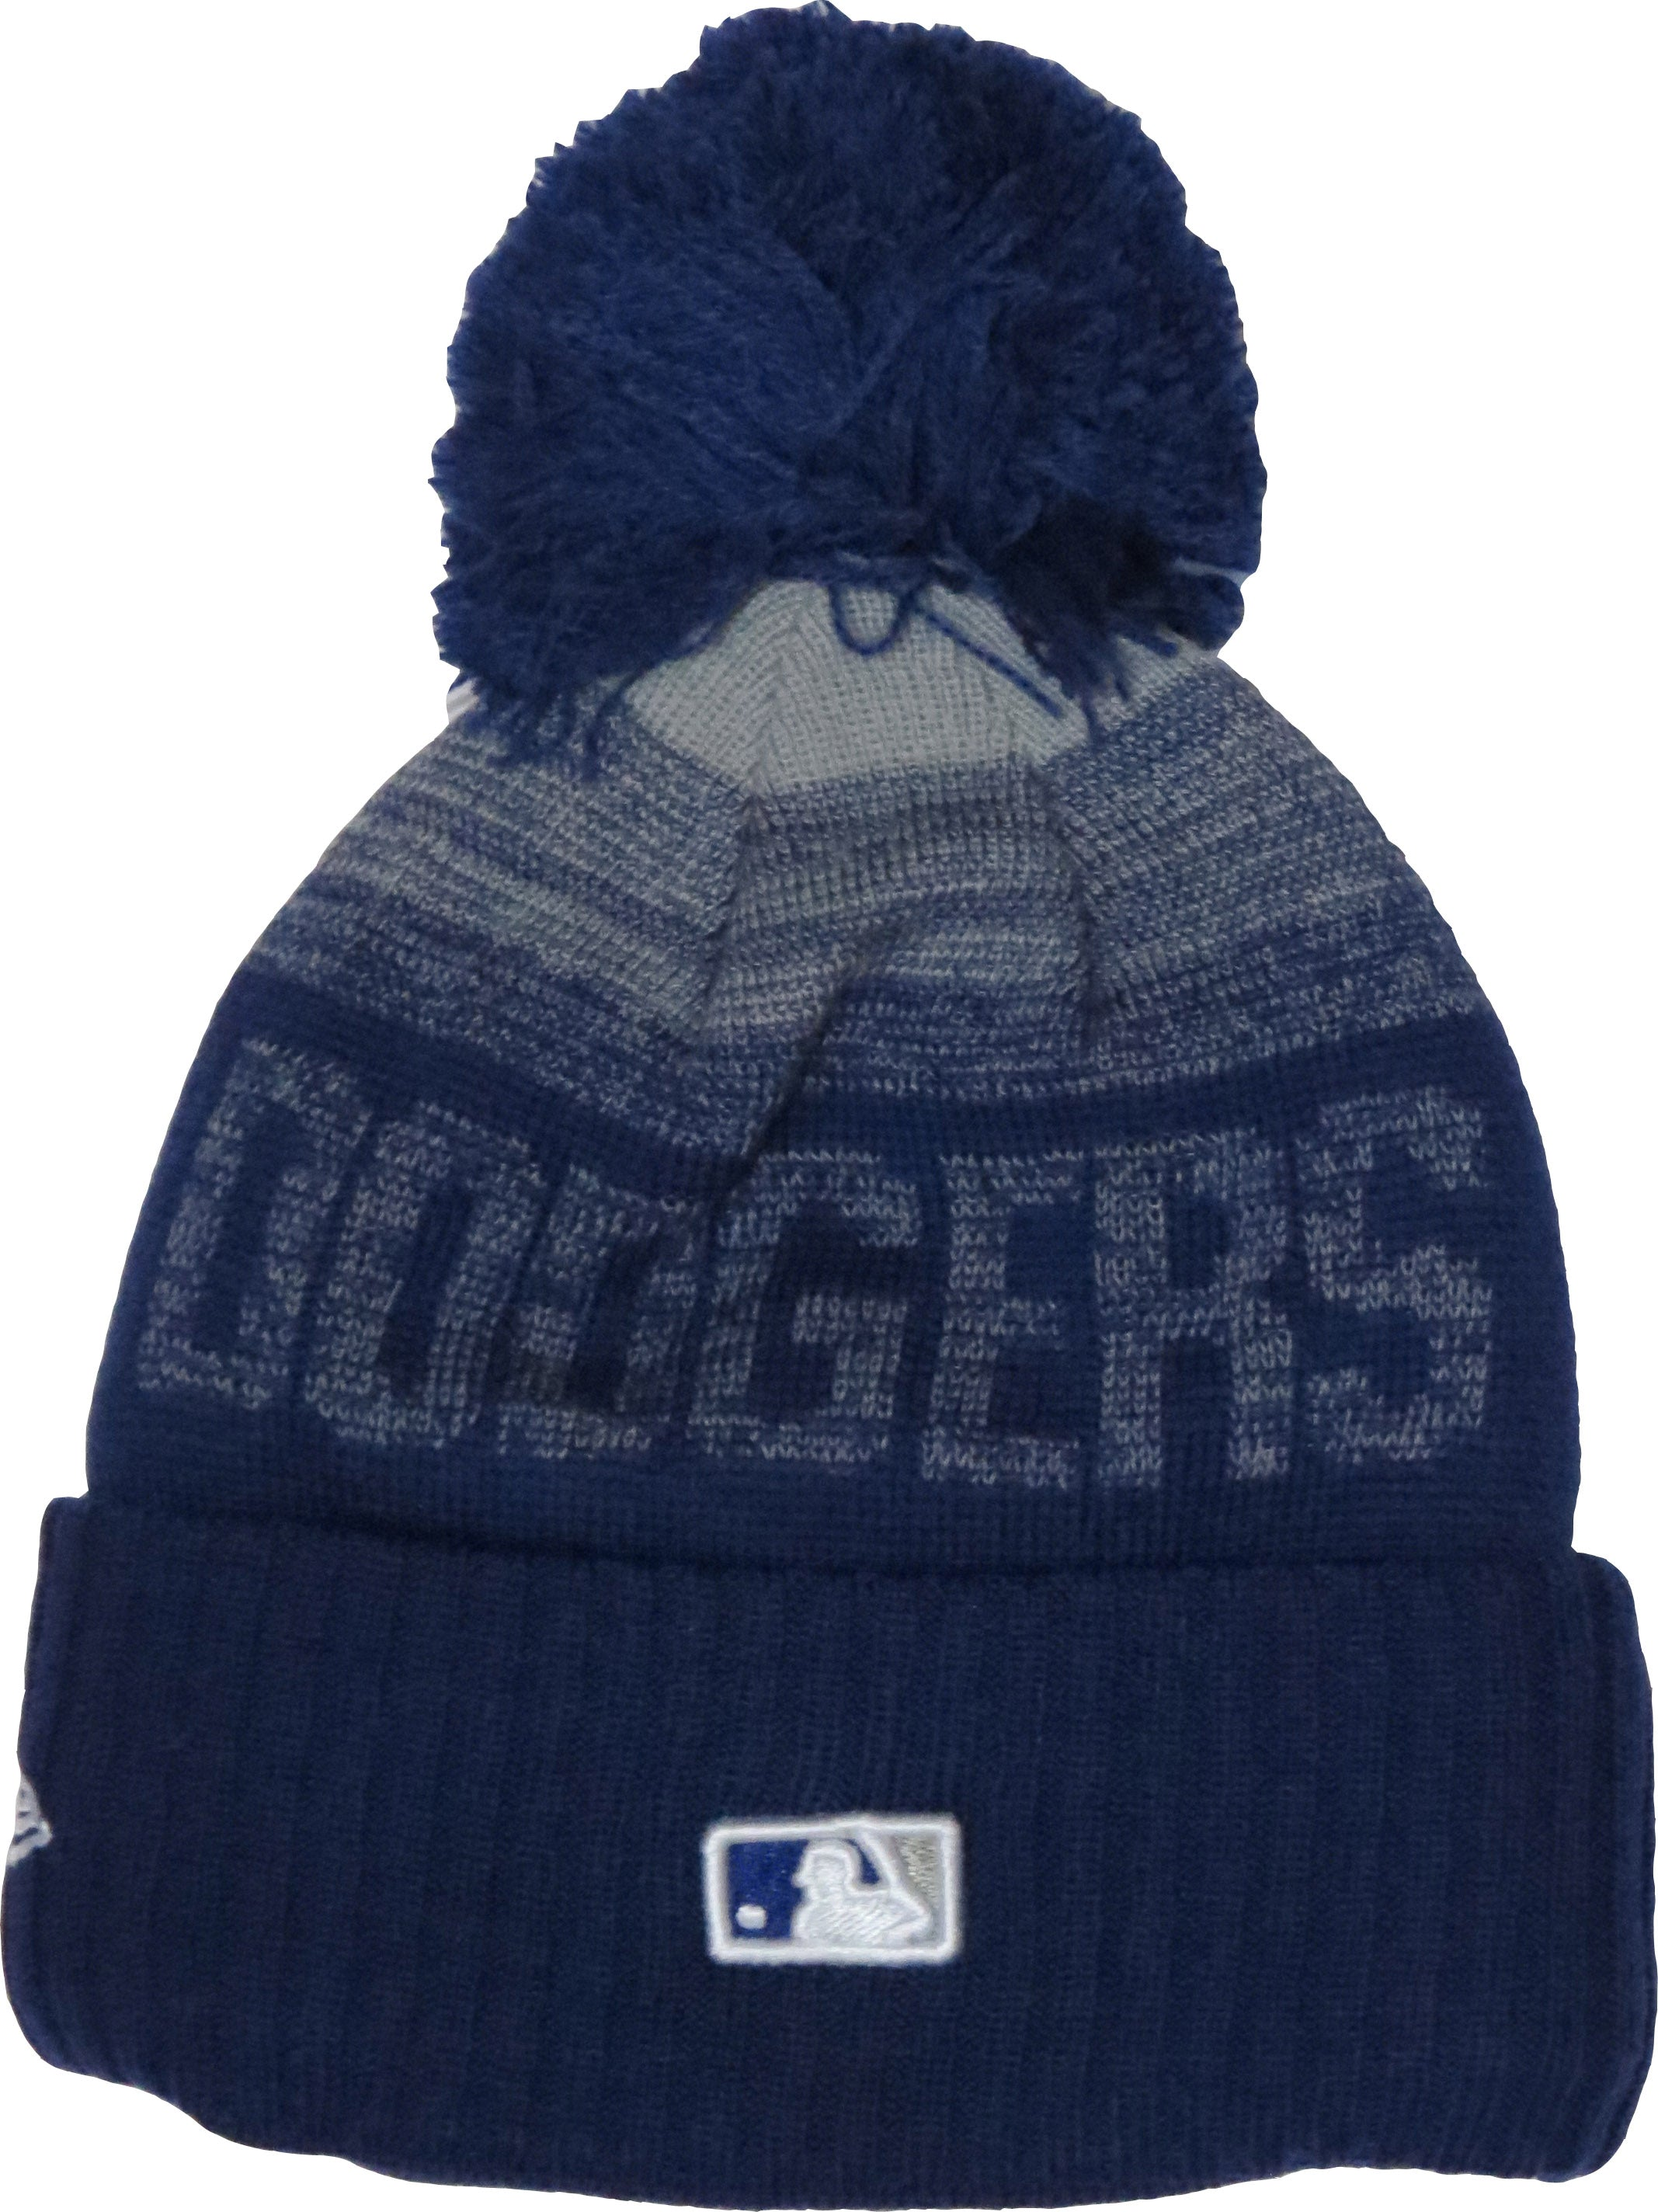 bf198040a73 LA dodgers New Era Kids Sport Knit Bobble Hat (Ages 2 - 10 years ...